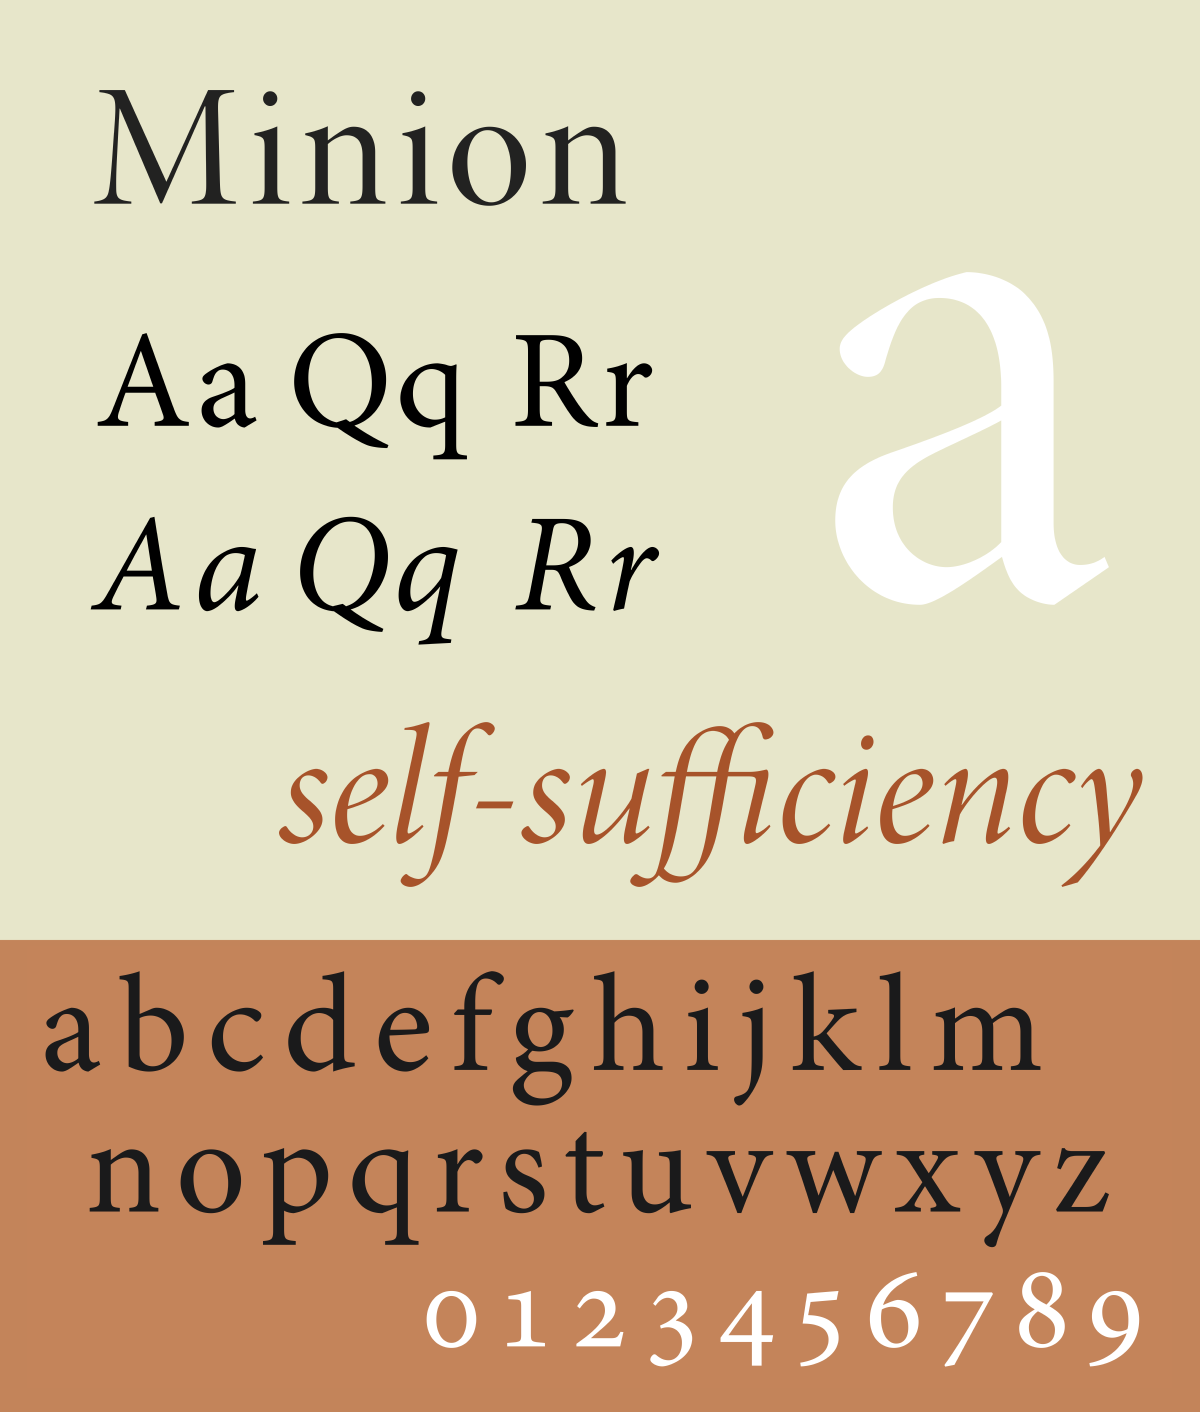 Minion Typeface Wikipedia